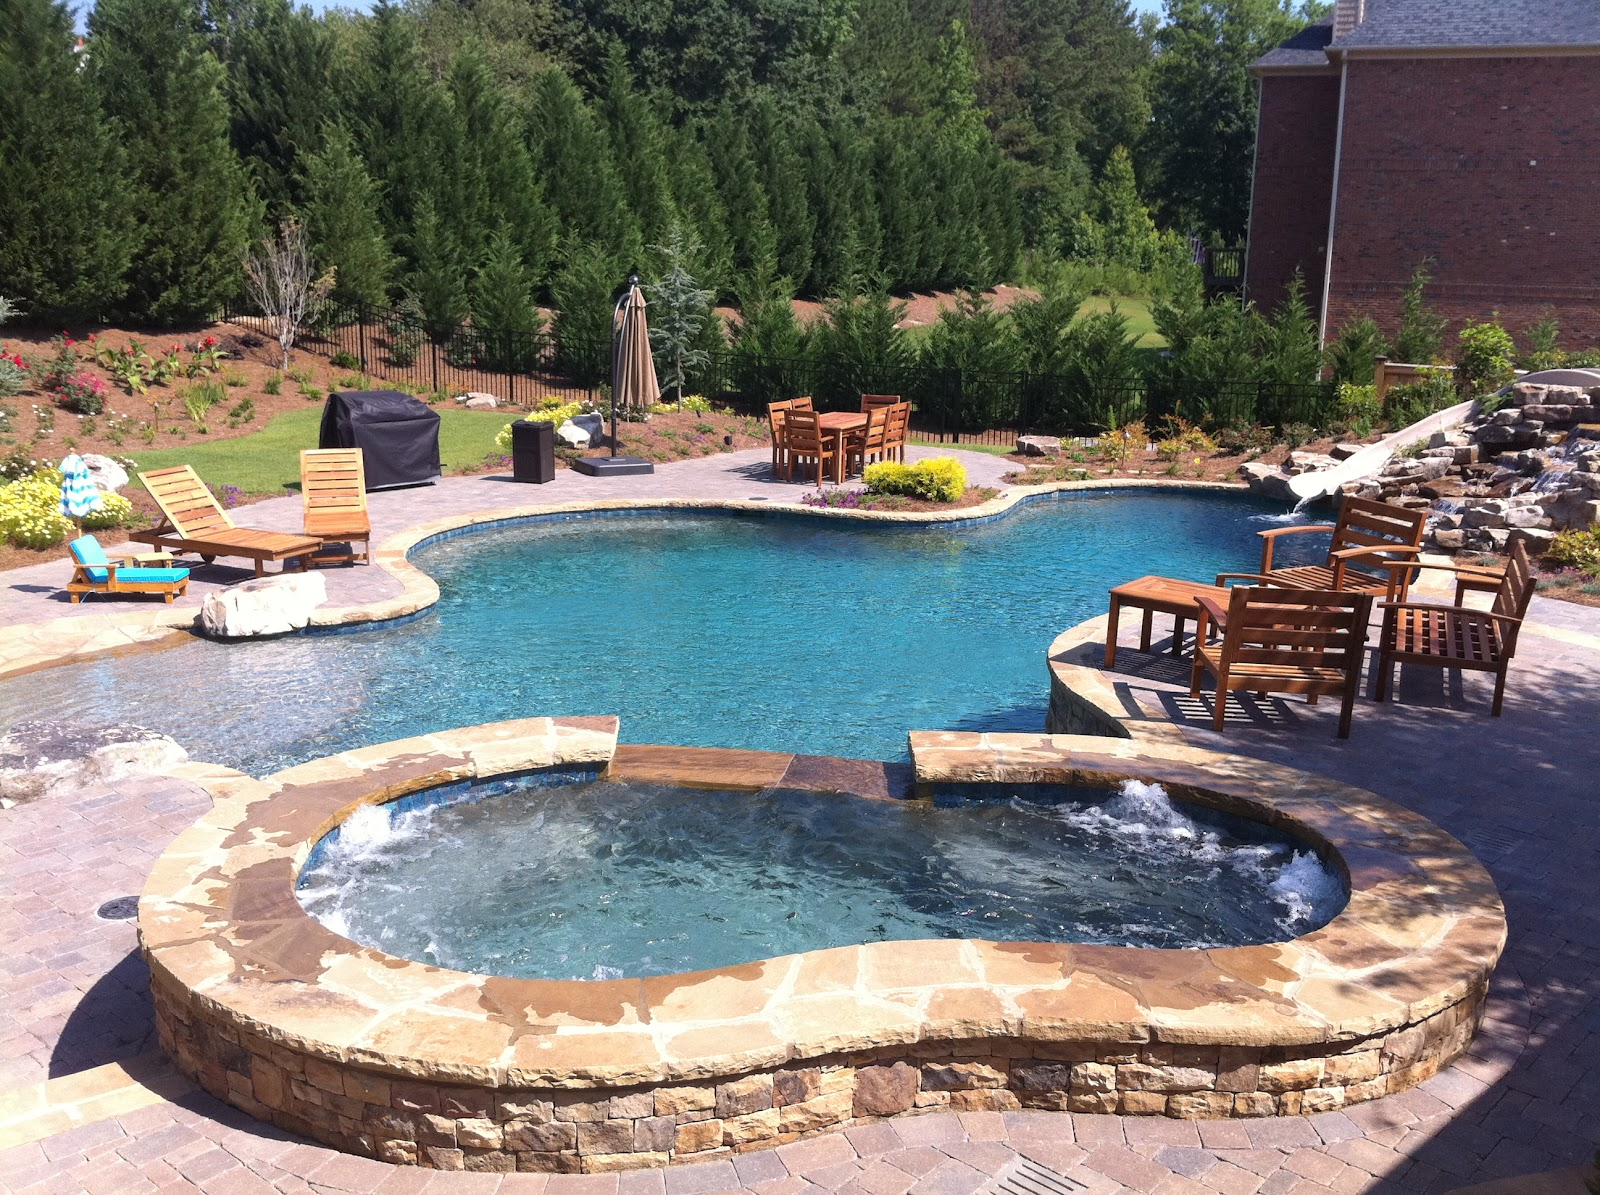 Backyard Oasis Pools: Free Form Pool, Beach Entry, Rock